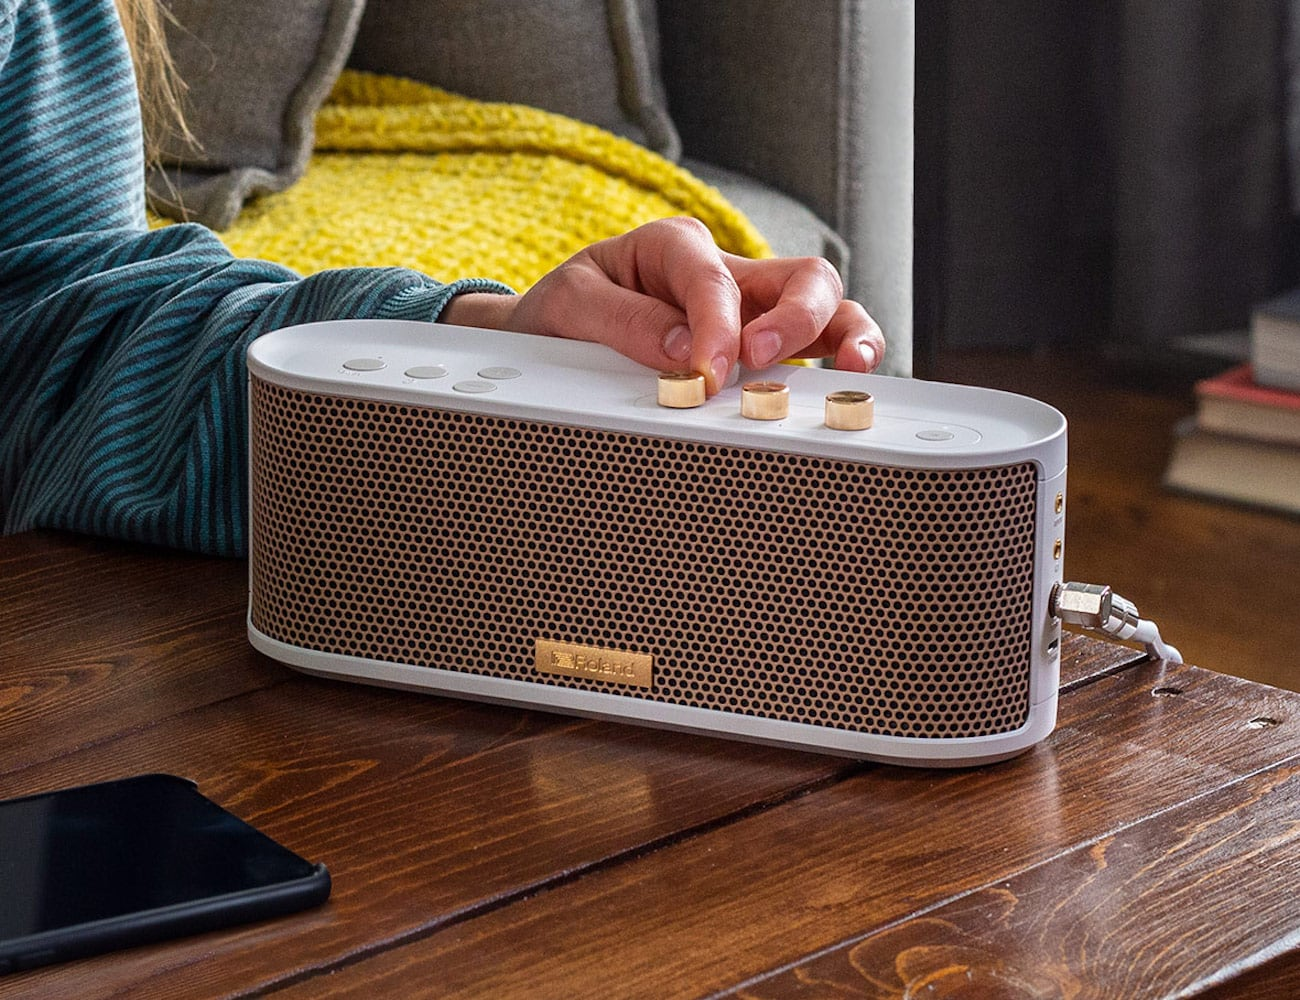 Roland BTM-1 Bluetooth Speaker with Instrument Input lets you play along to your songs